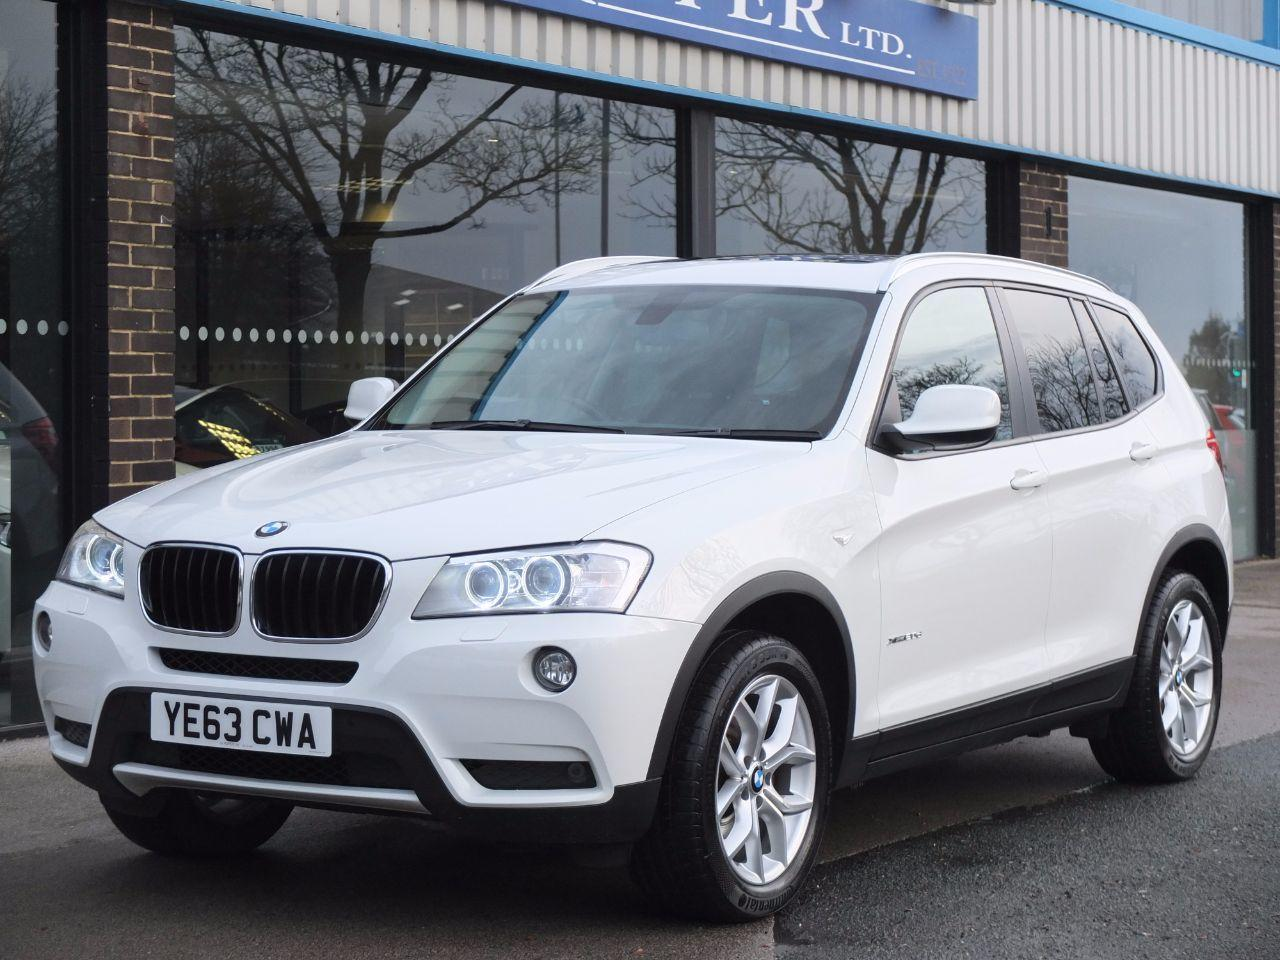 BMW X3 2.0 xDrive20d SE Auto (Pro Media and Panoramic Roof) Estate Diesel Alpine WhiteBMW X3 2.0 xDrive20d SE Auto (Pro Media and Panoramic Roof) Estate Diesel Alpine White at fa Roper Ltd Bradford